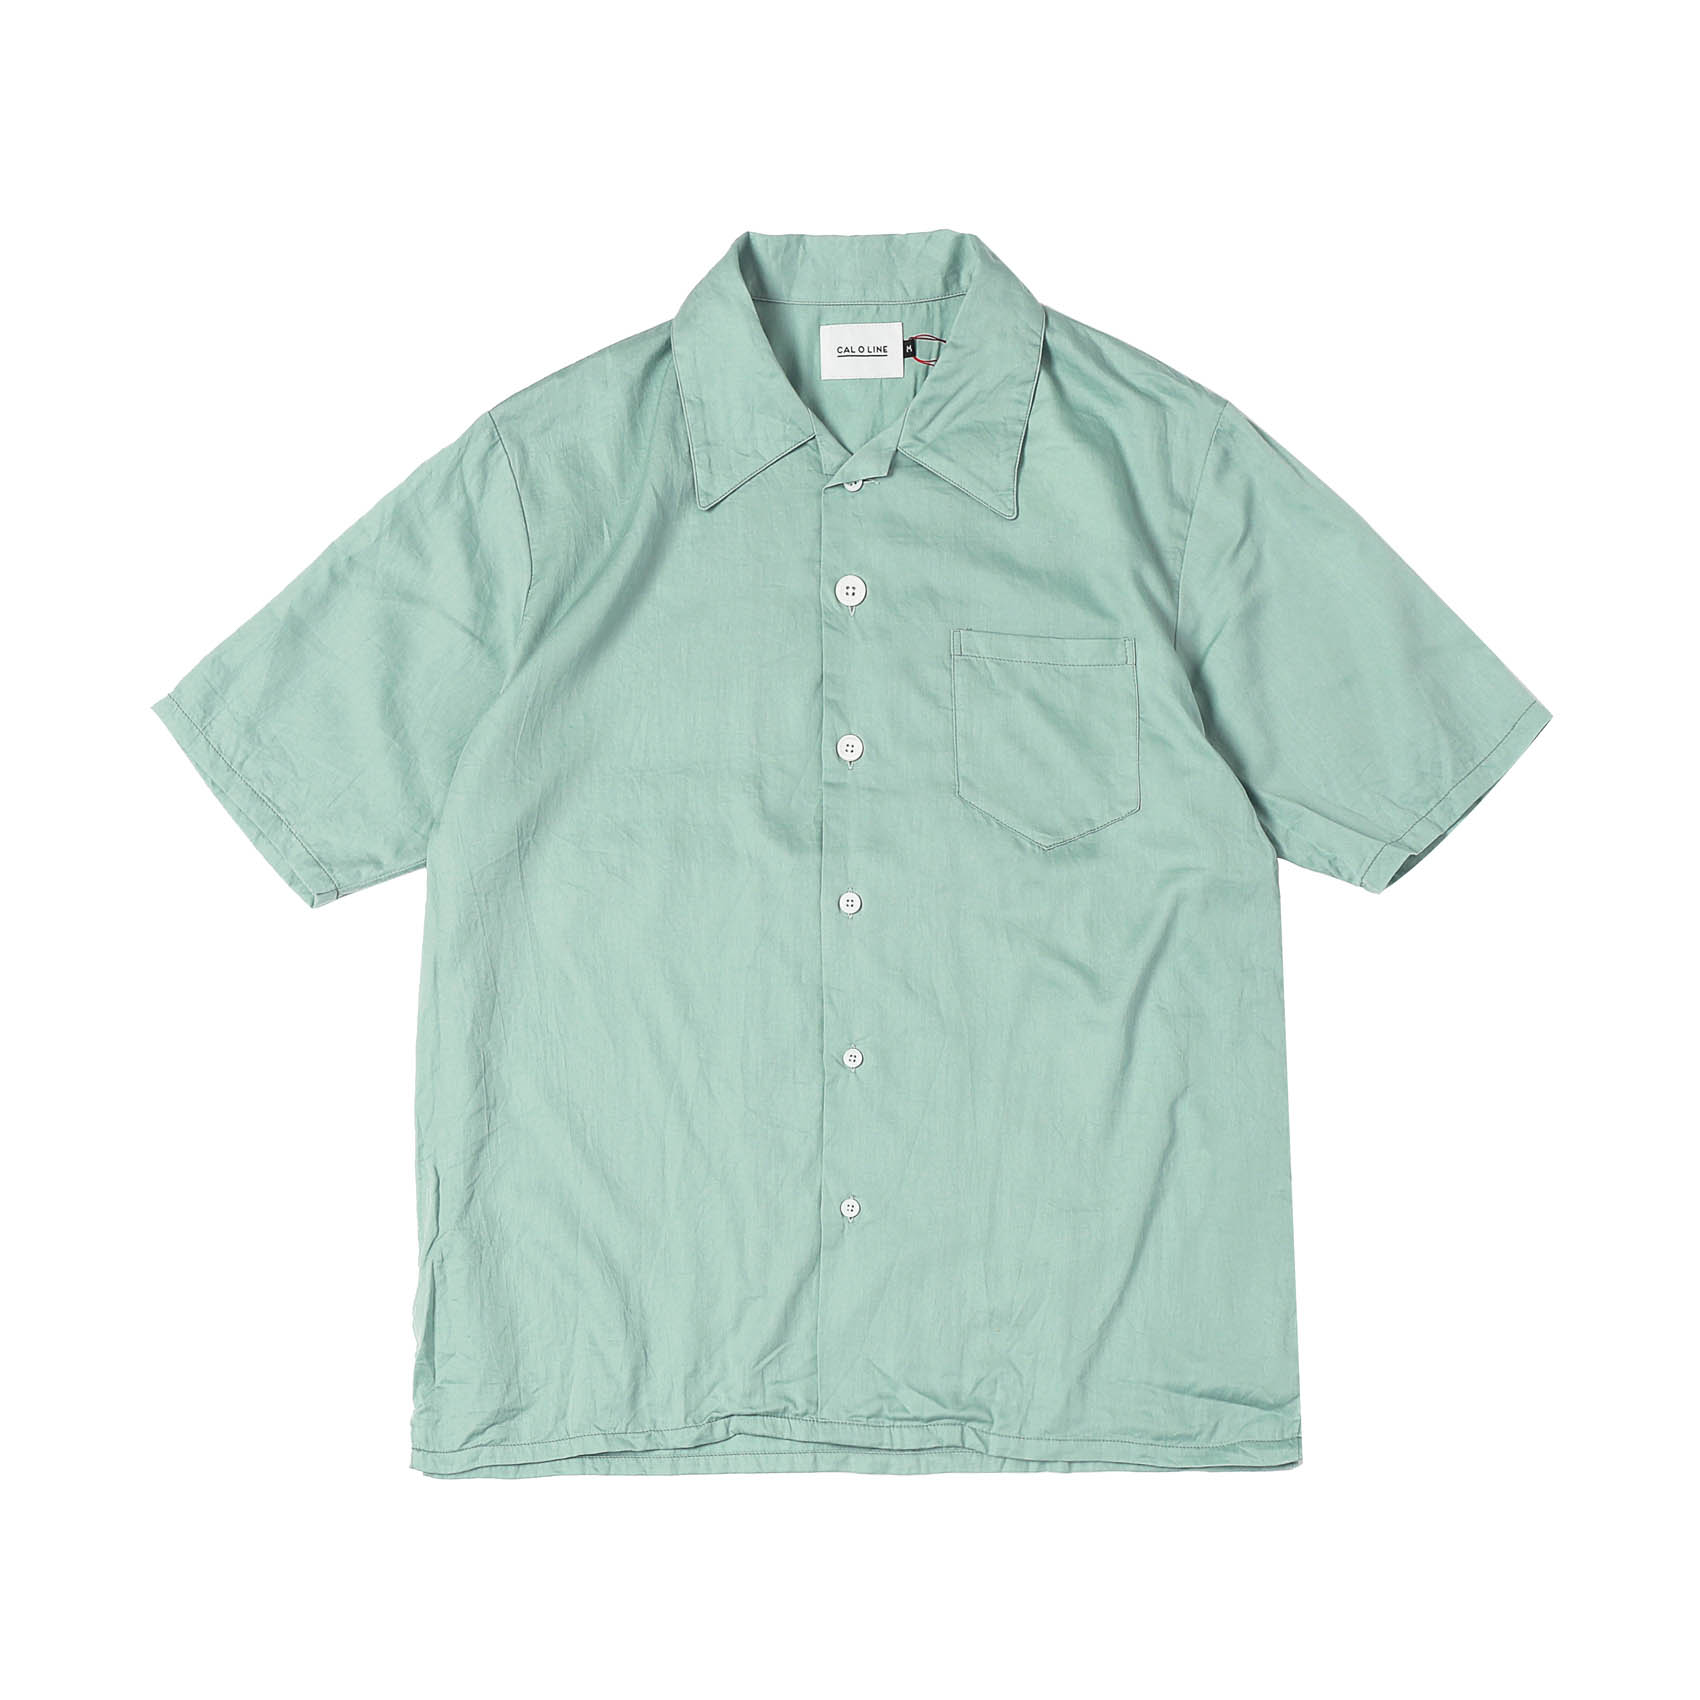 OPEN COLLAR S/S SHIRTS - GREEN